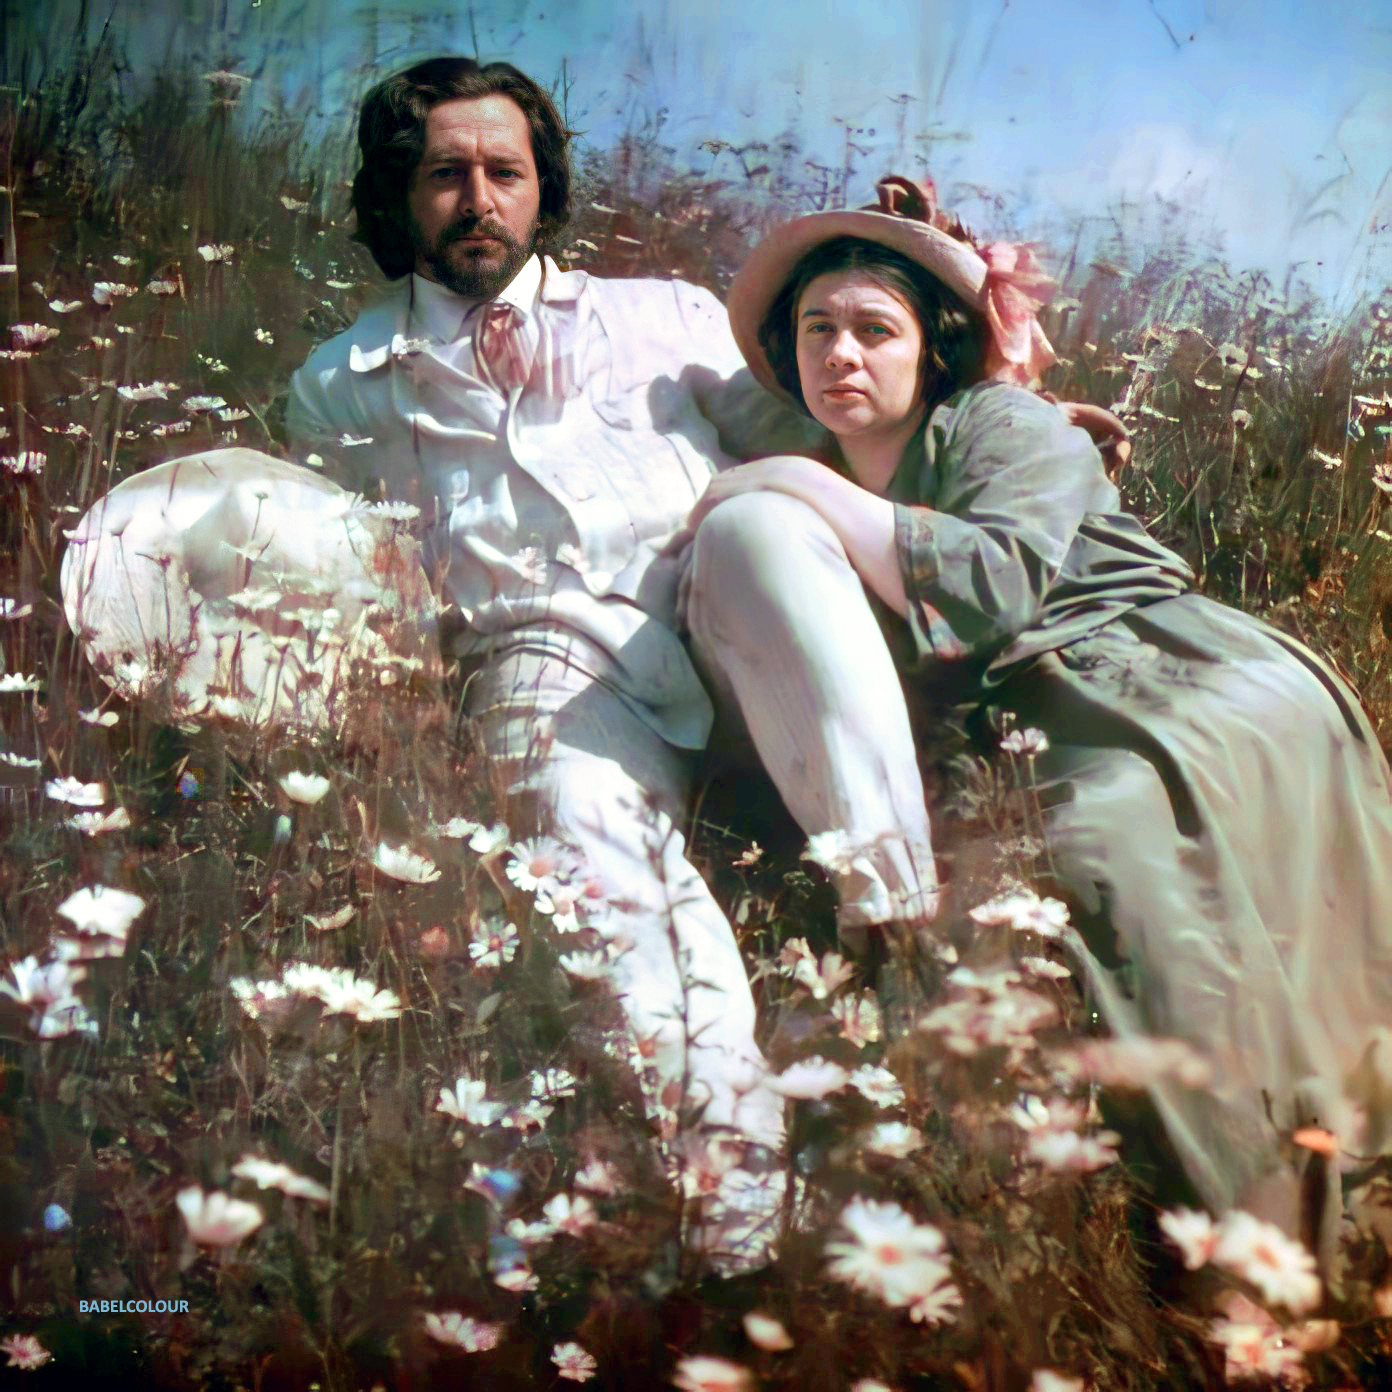 Leonid Andreyev (1871-1919) reclining amongst the bluebells & daisies with his second wife, Anna Denisevich, around 1910